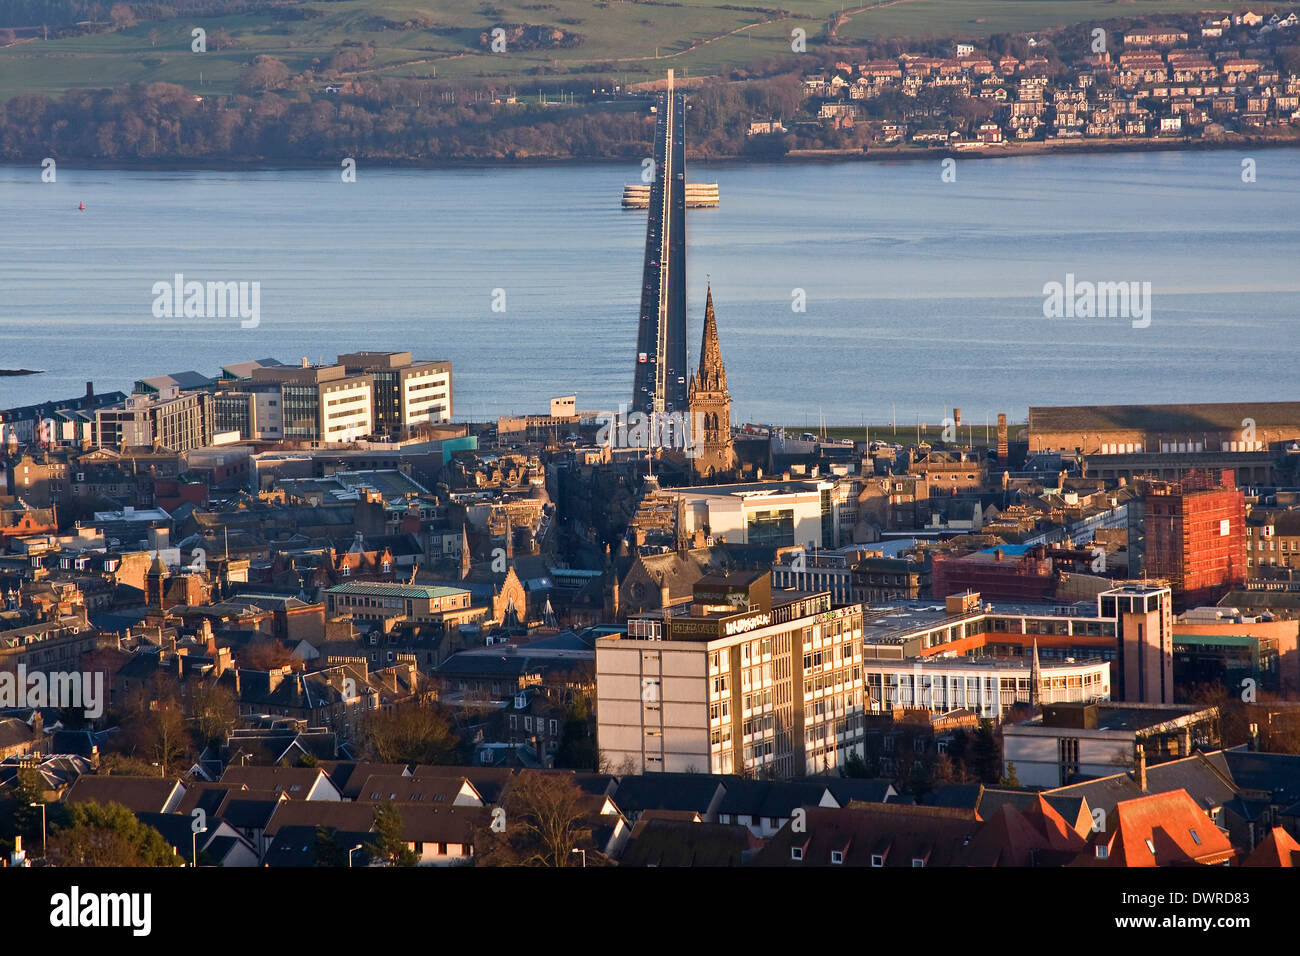 Landscape view of Dundee City and the Tay Road Bridge spanning across the River Tay from the Law at low sunlight, Stock Photo